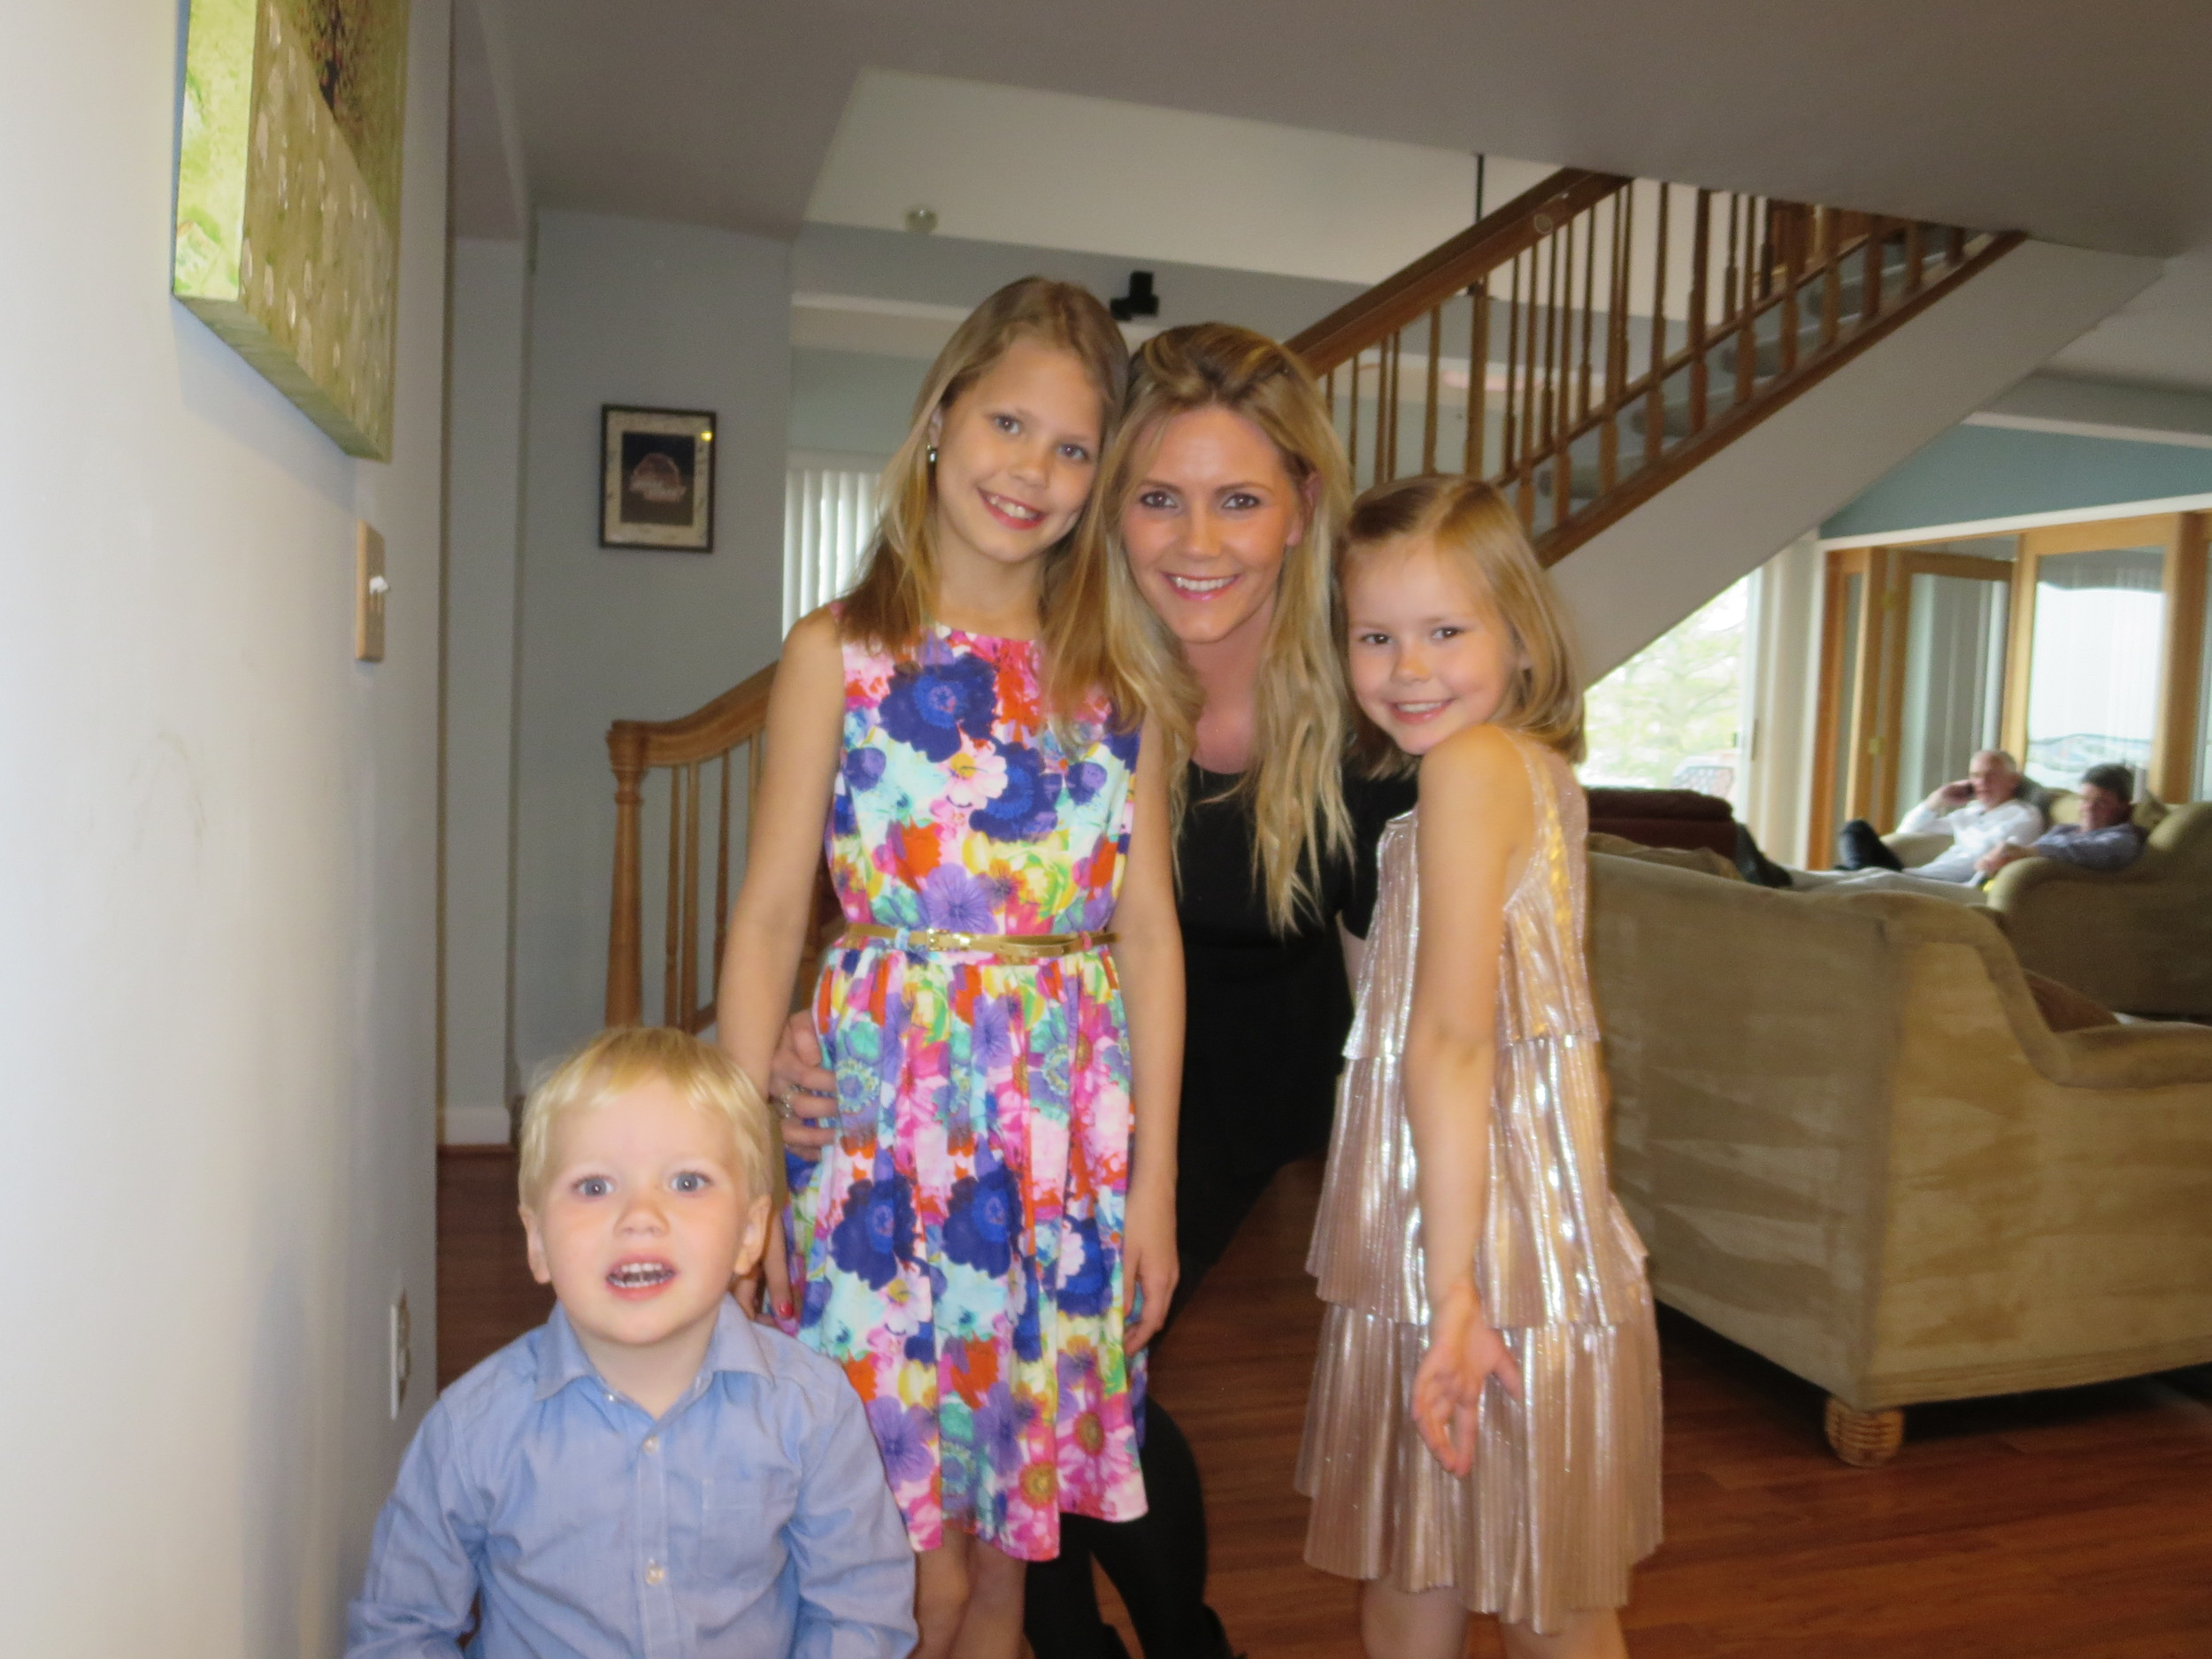 Lilja with her kids - ready to party